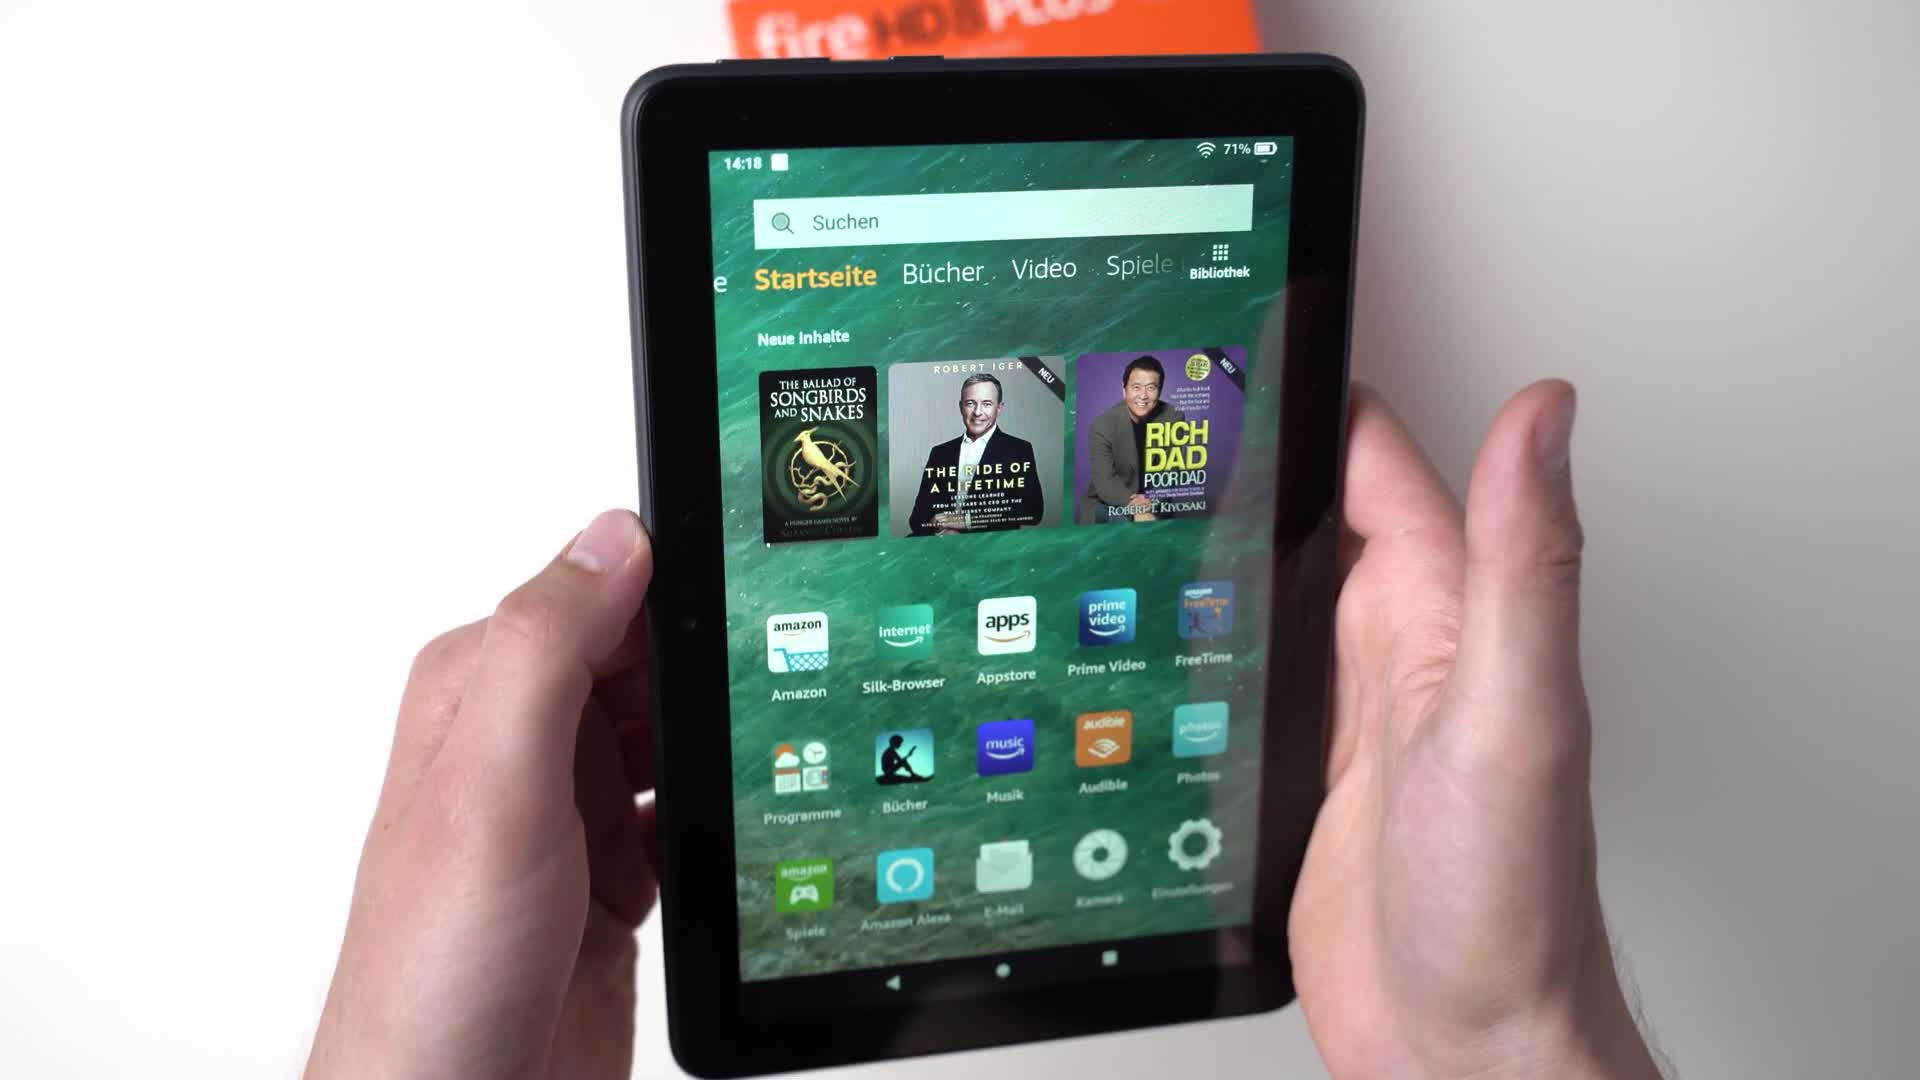 Tablet, Amazon, Andrzej Tokarski, Tabletblog, Unboxing, Amazon Fire, Fire HD, Amazon Fire HD 8, Fire HD 8, Fire OS, Fire HD 8 Plus, Amazon Fire HD 8 Plus